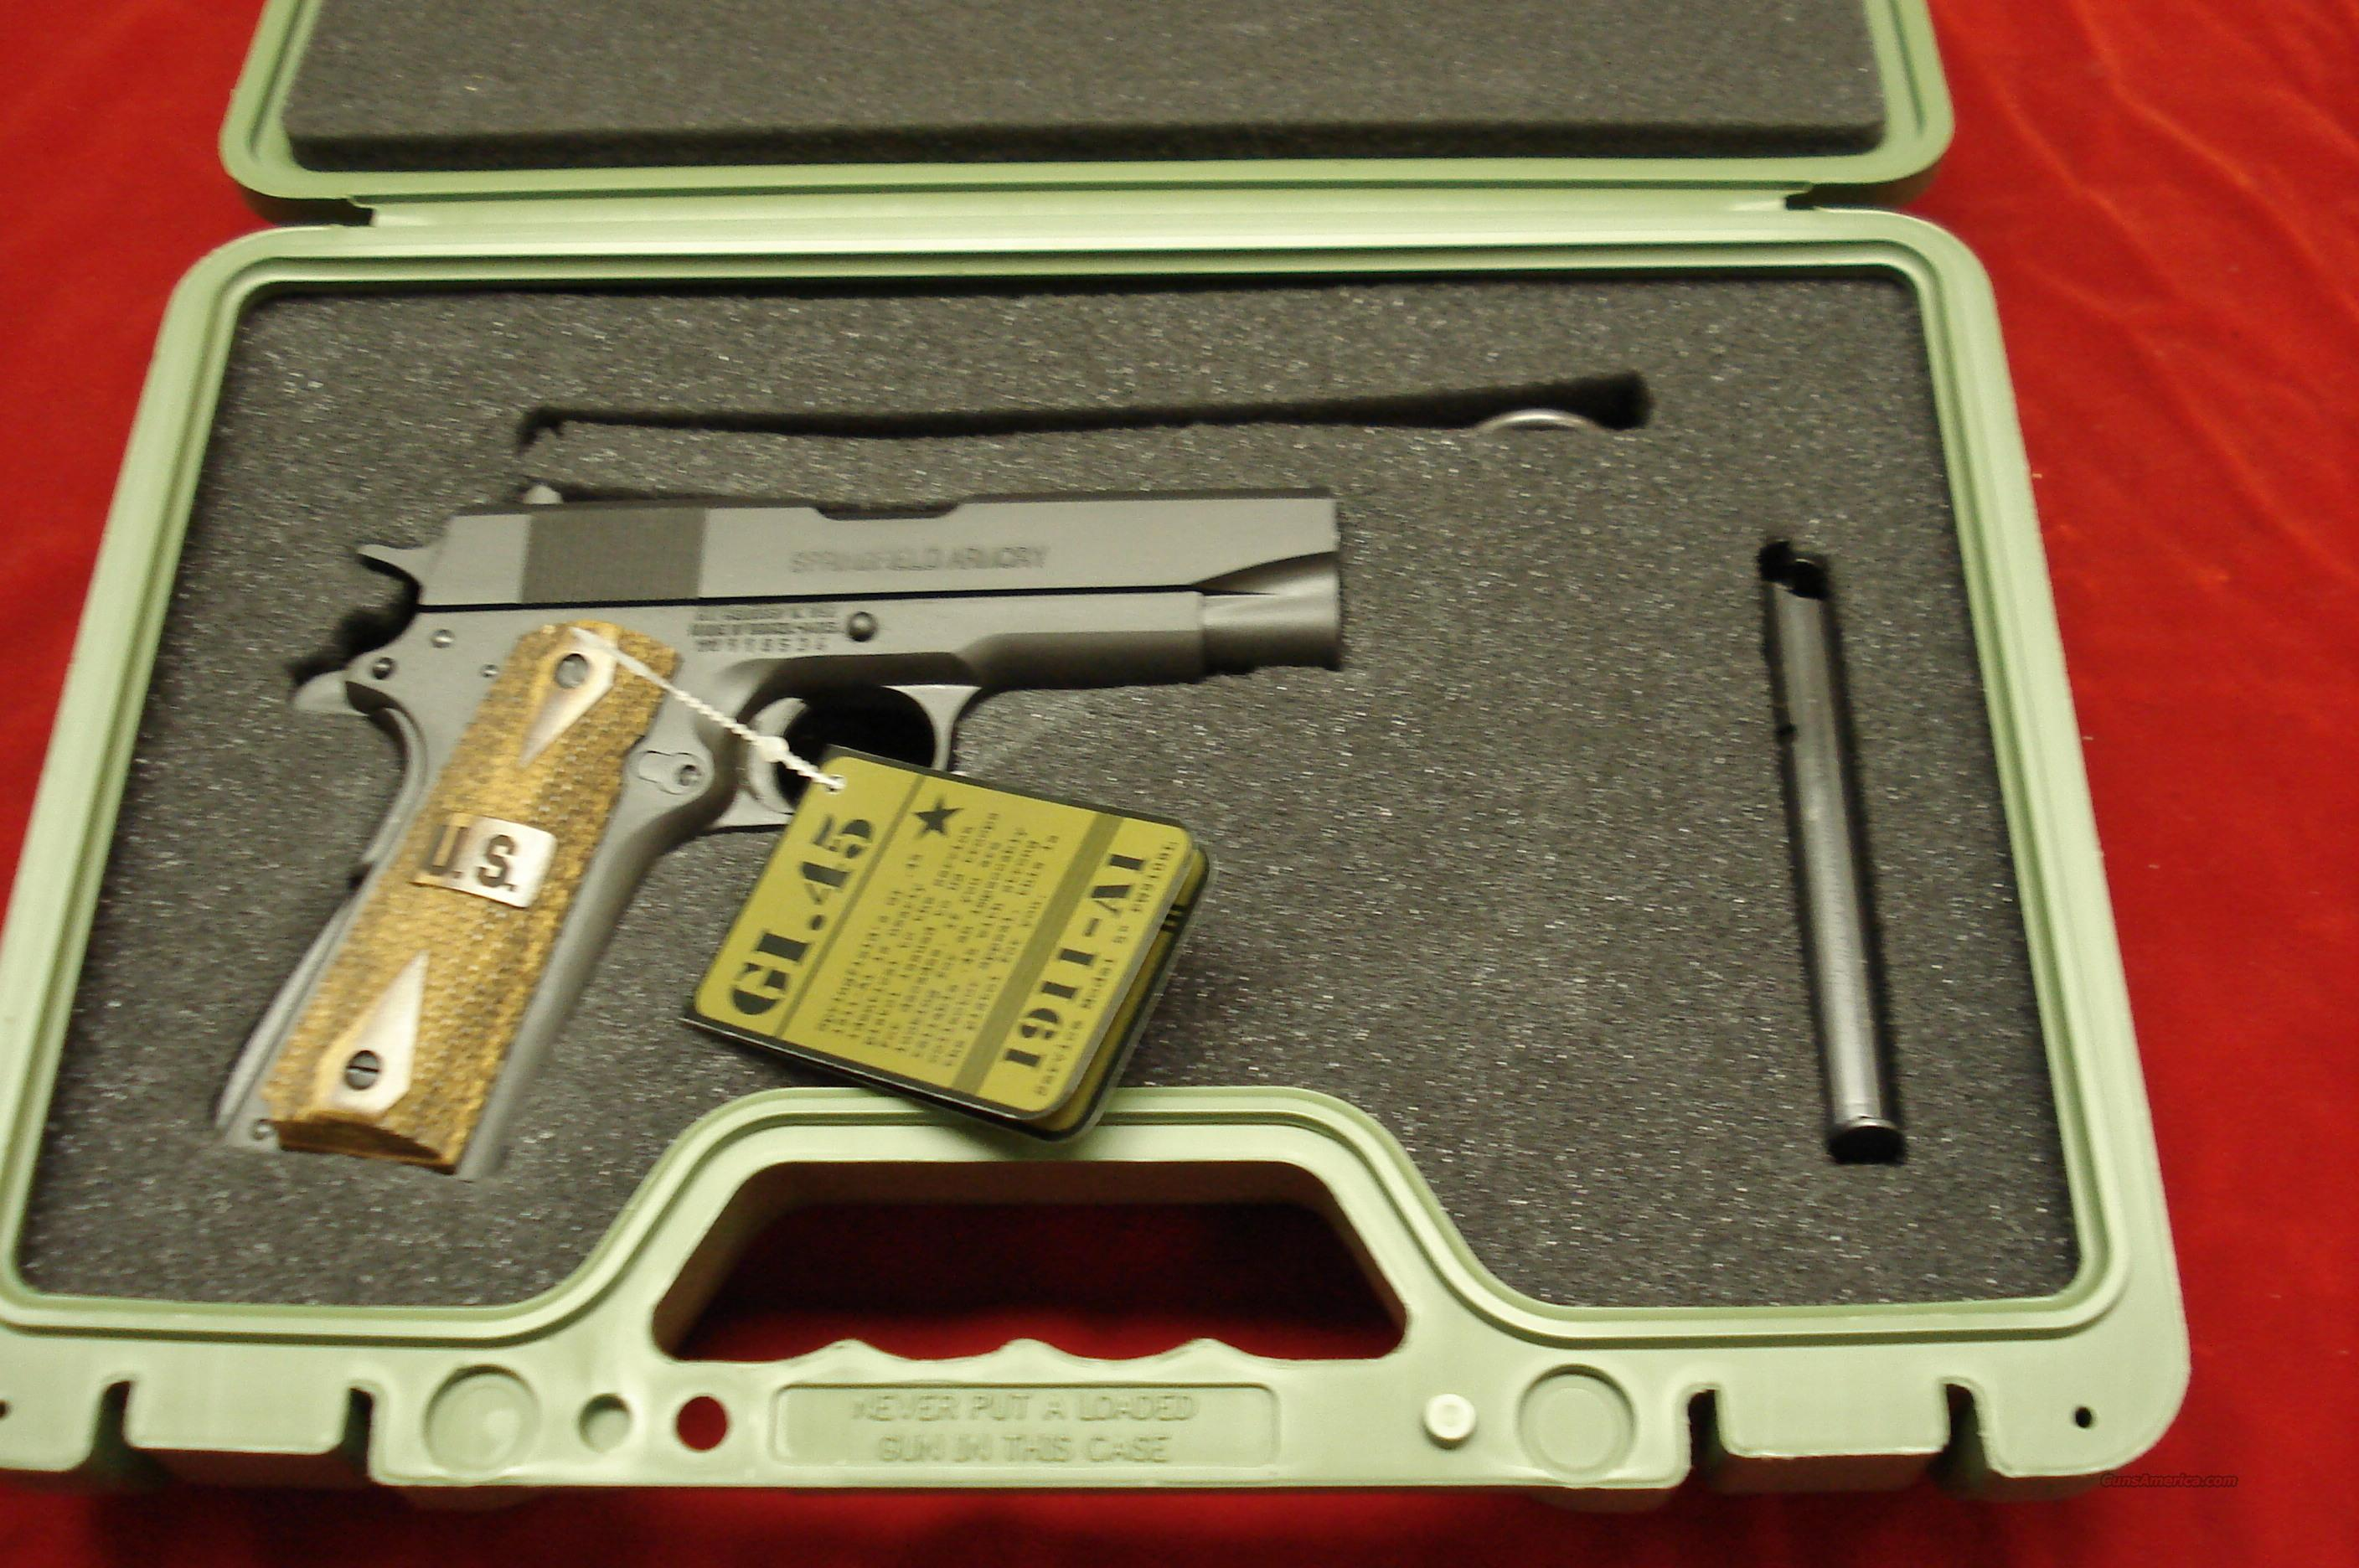 SPRINGFIELD ARMORY  GI CHAMPION PACKAGE (PW9142LP) NEW  Guns > Pistols > Springfield Armory Pistols > 1911 Type